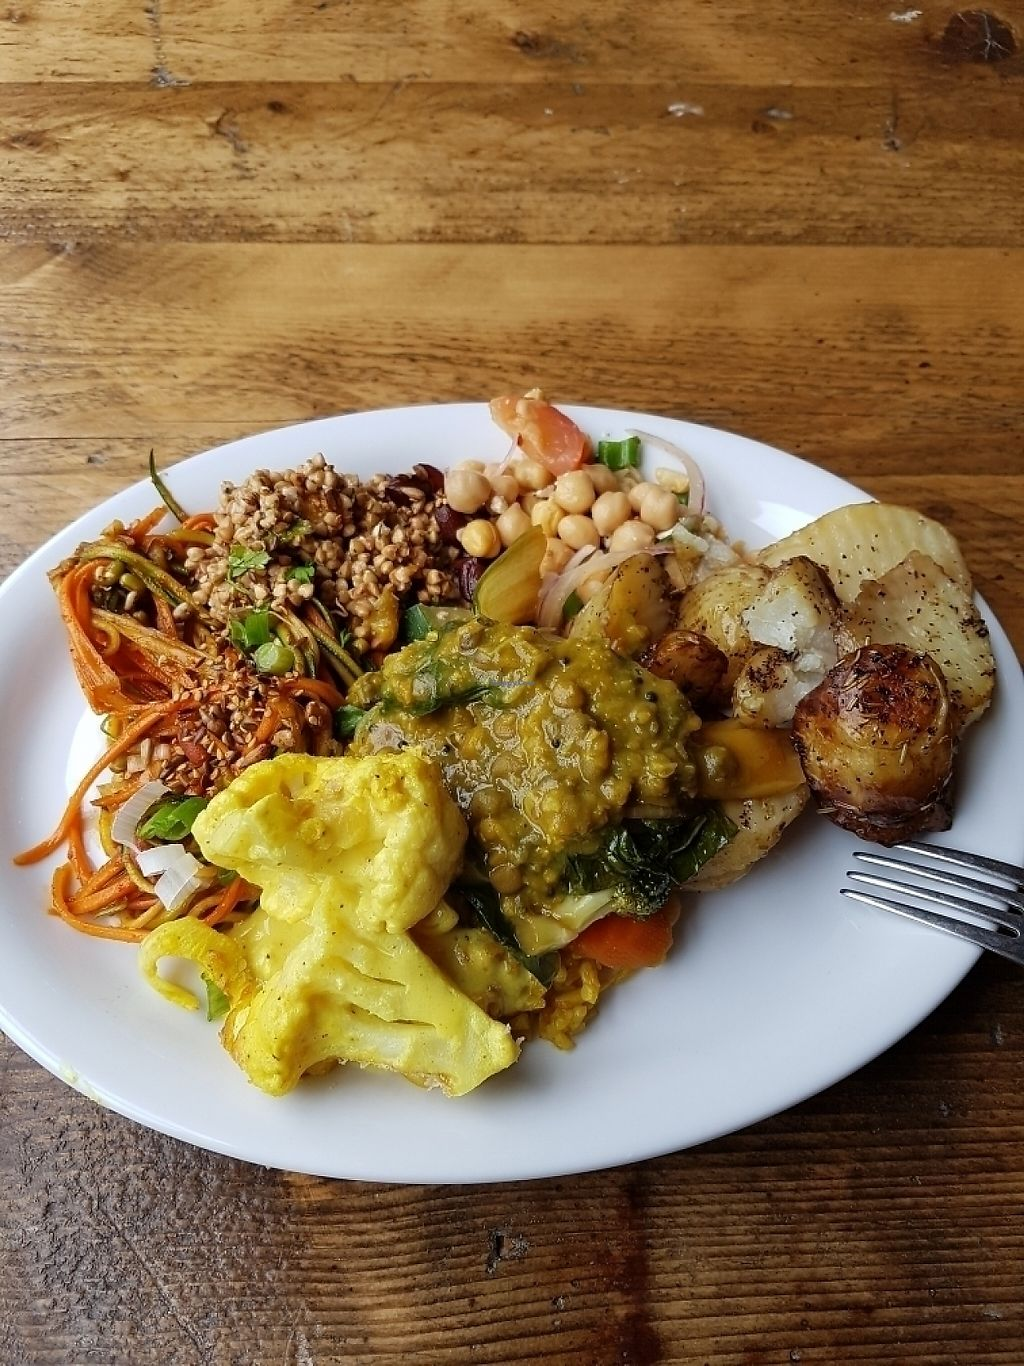 """Photo of Natural Healthy Foods Eatery  by <a href=""""/members/profile/MelanieStJohn"""">MelanieStJohn</a> <br/>salads, dahl, potatoes, cauliflower cheese <br/> June 4, 2017  - <a href='/contact/abuse/image/89849/265706'>Report</a>"""